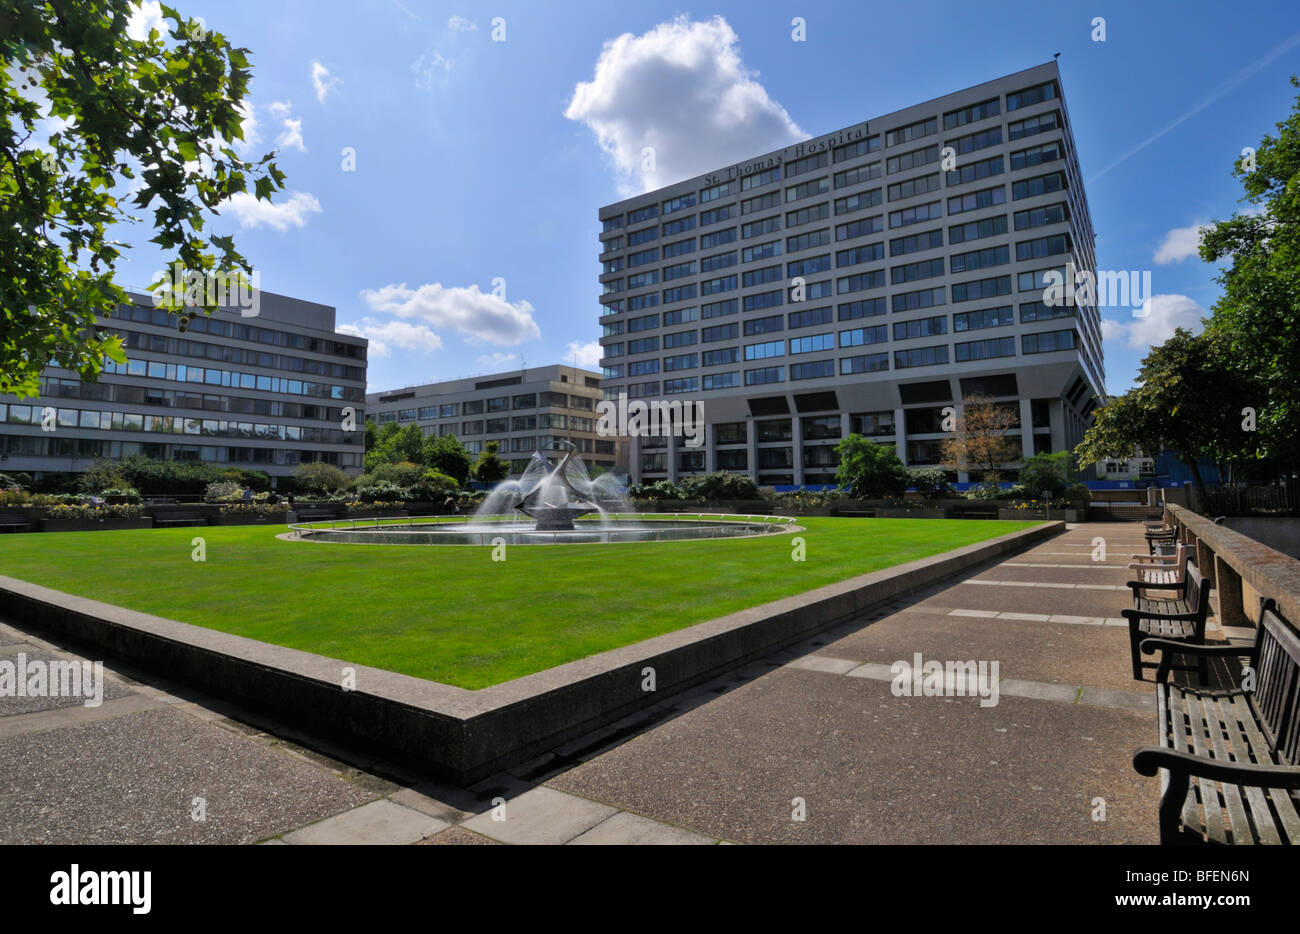 St Thomas' Hospital, Westminster Bridge Road, London, SE1 7EH, United Kingdom - Stock Image